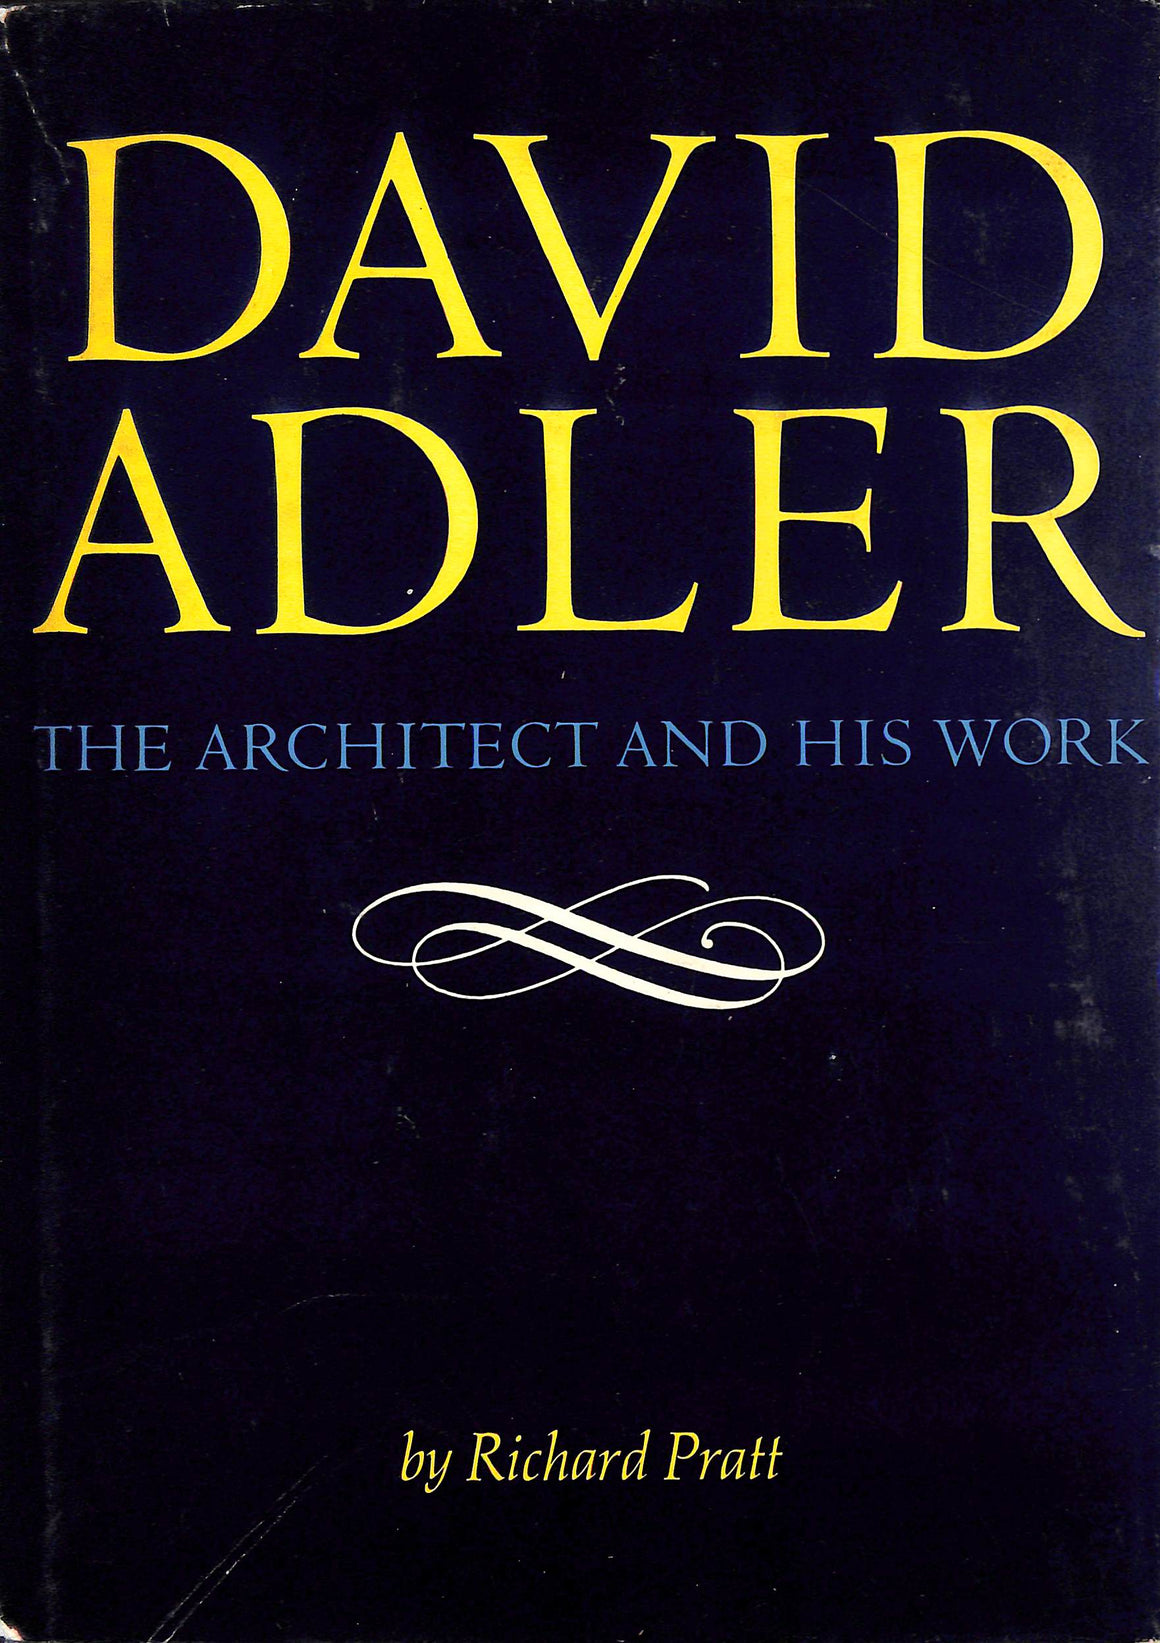 David Adler: The Architect and His Work